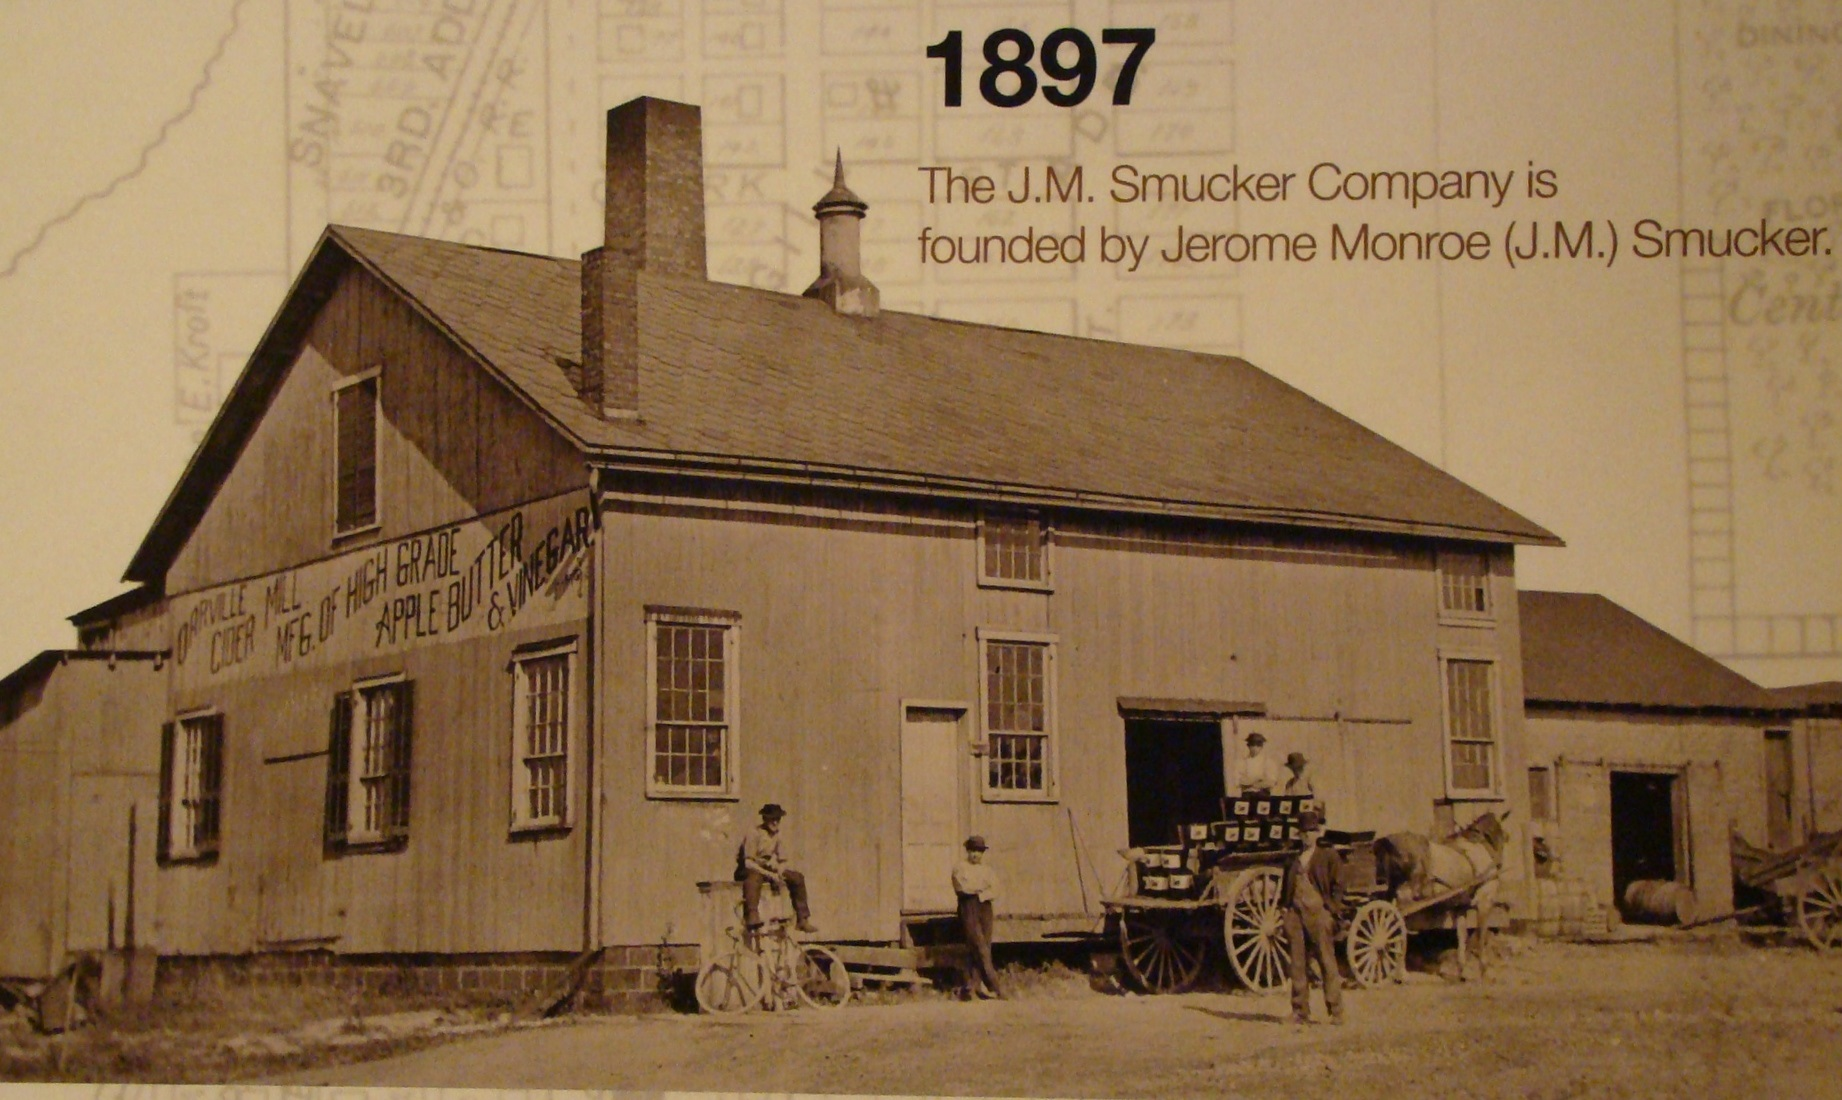 Smucker's horse drawn wagon